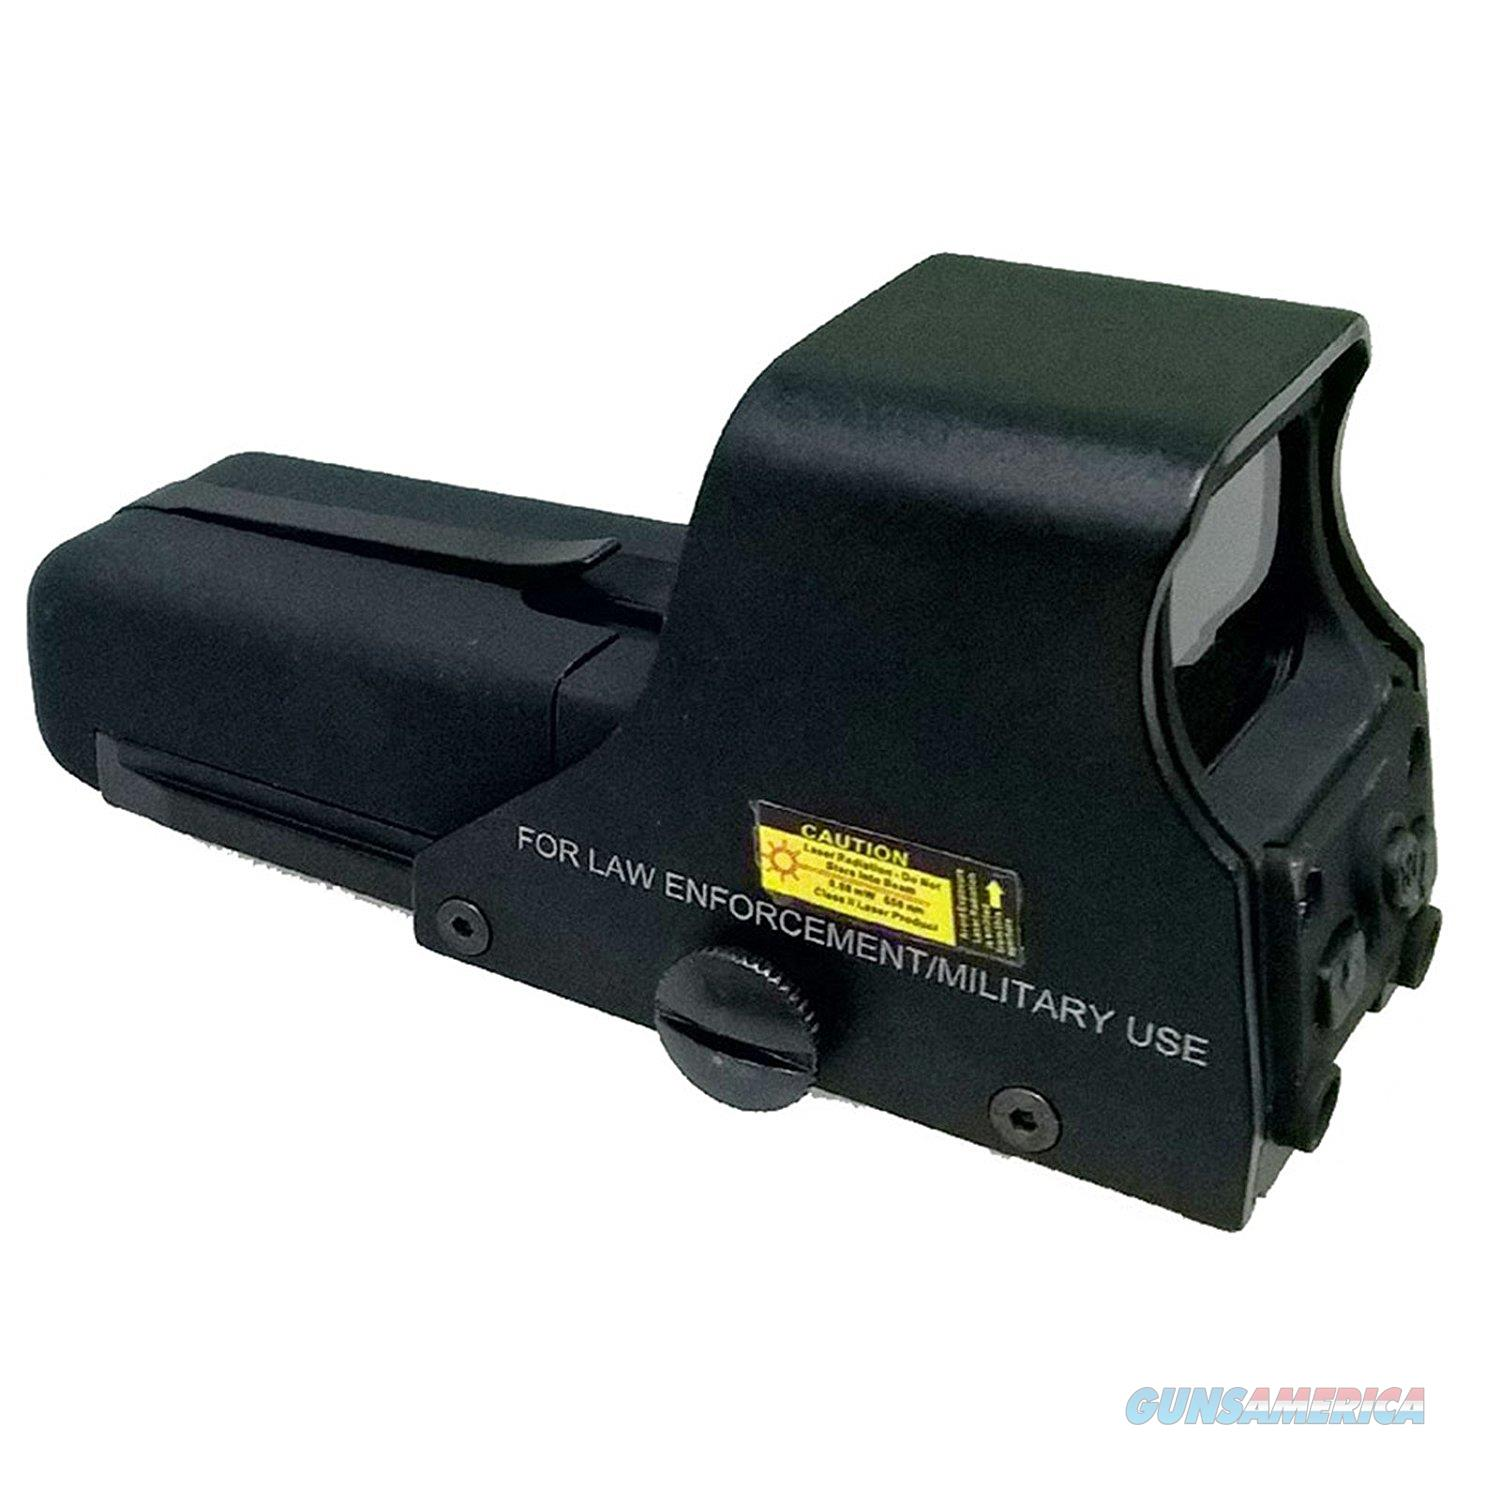 EOtech style Red Dot Tactical sight New in package  Non-Guns > Scopes/Mounts/Rings & Optics > Tactical Scopes > Red Dot